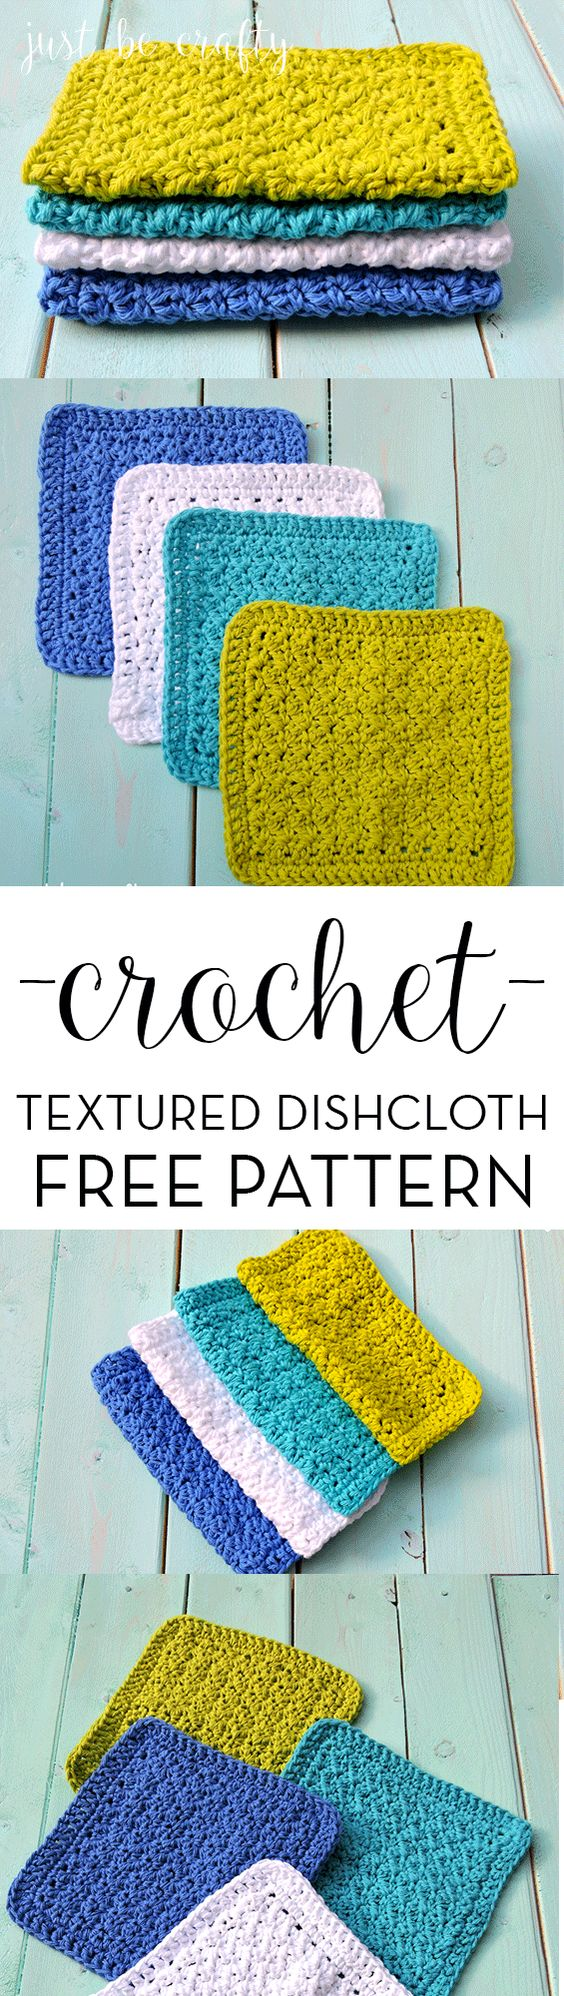 Crochet Textured Dishcloth Pattern.  Free pattern by Just Be Crafty: